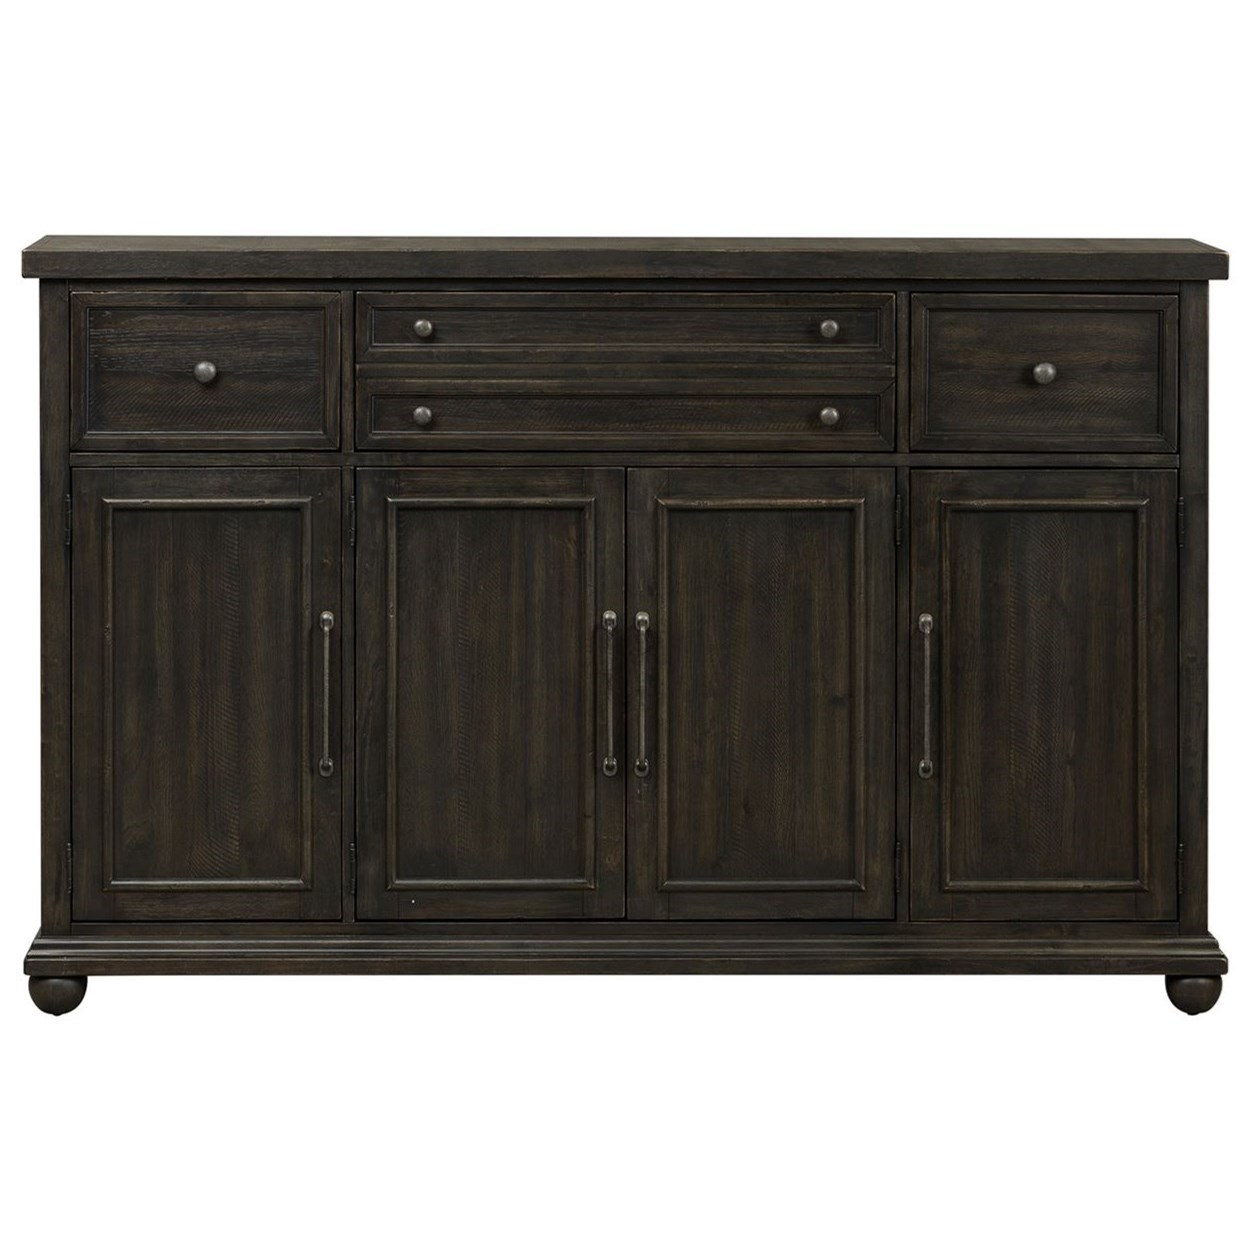 Harvest Home Hall Buffet by Libby at Walker's Furniture